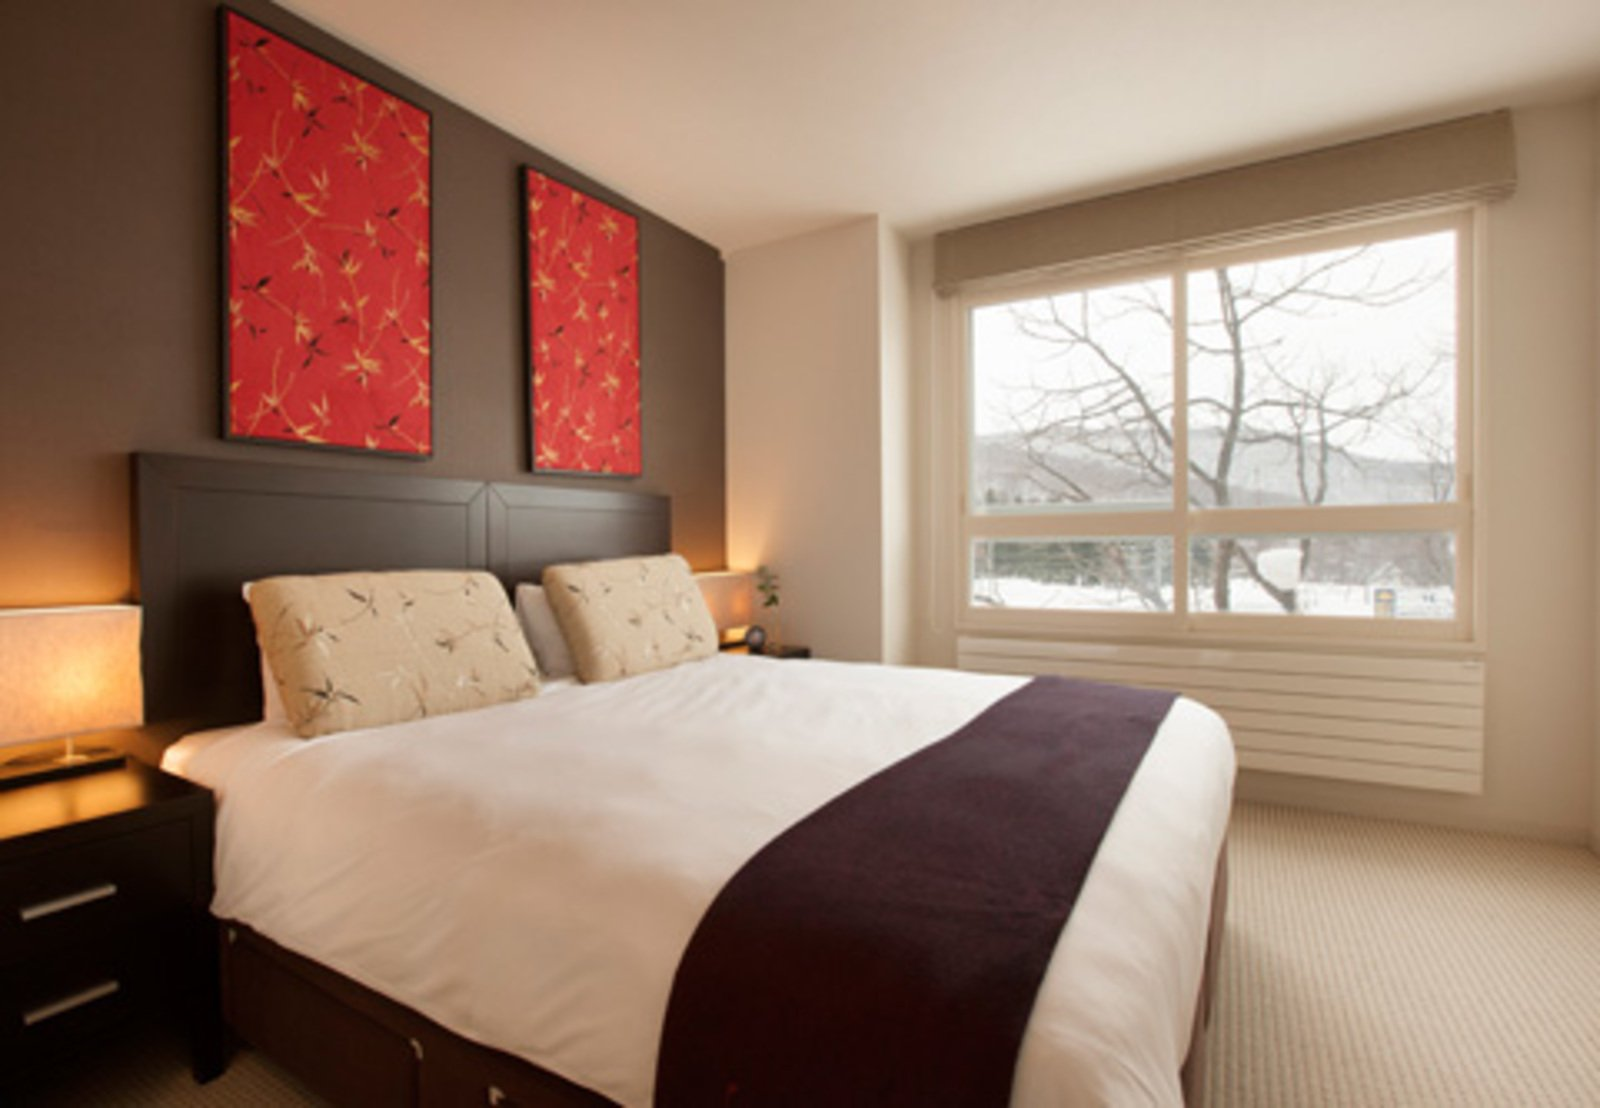 The master bedroom in a 2 bedroom apartment at Freshwater apartments in Niseko, Japan.